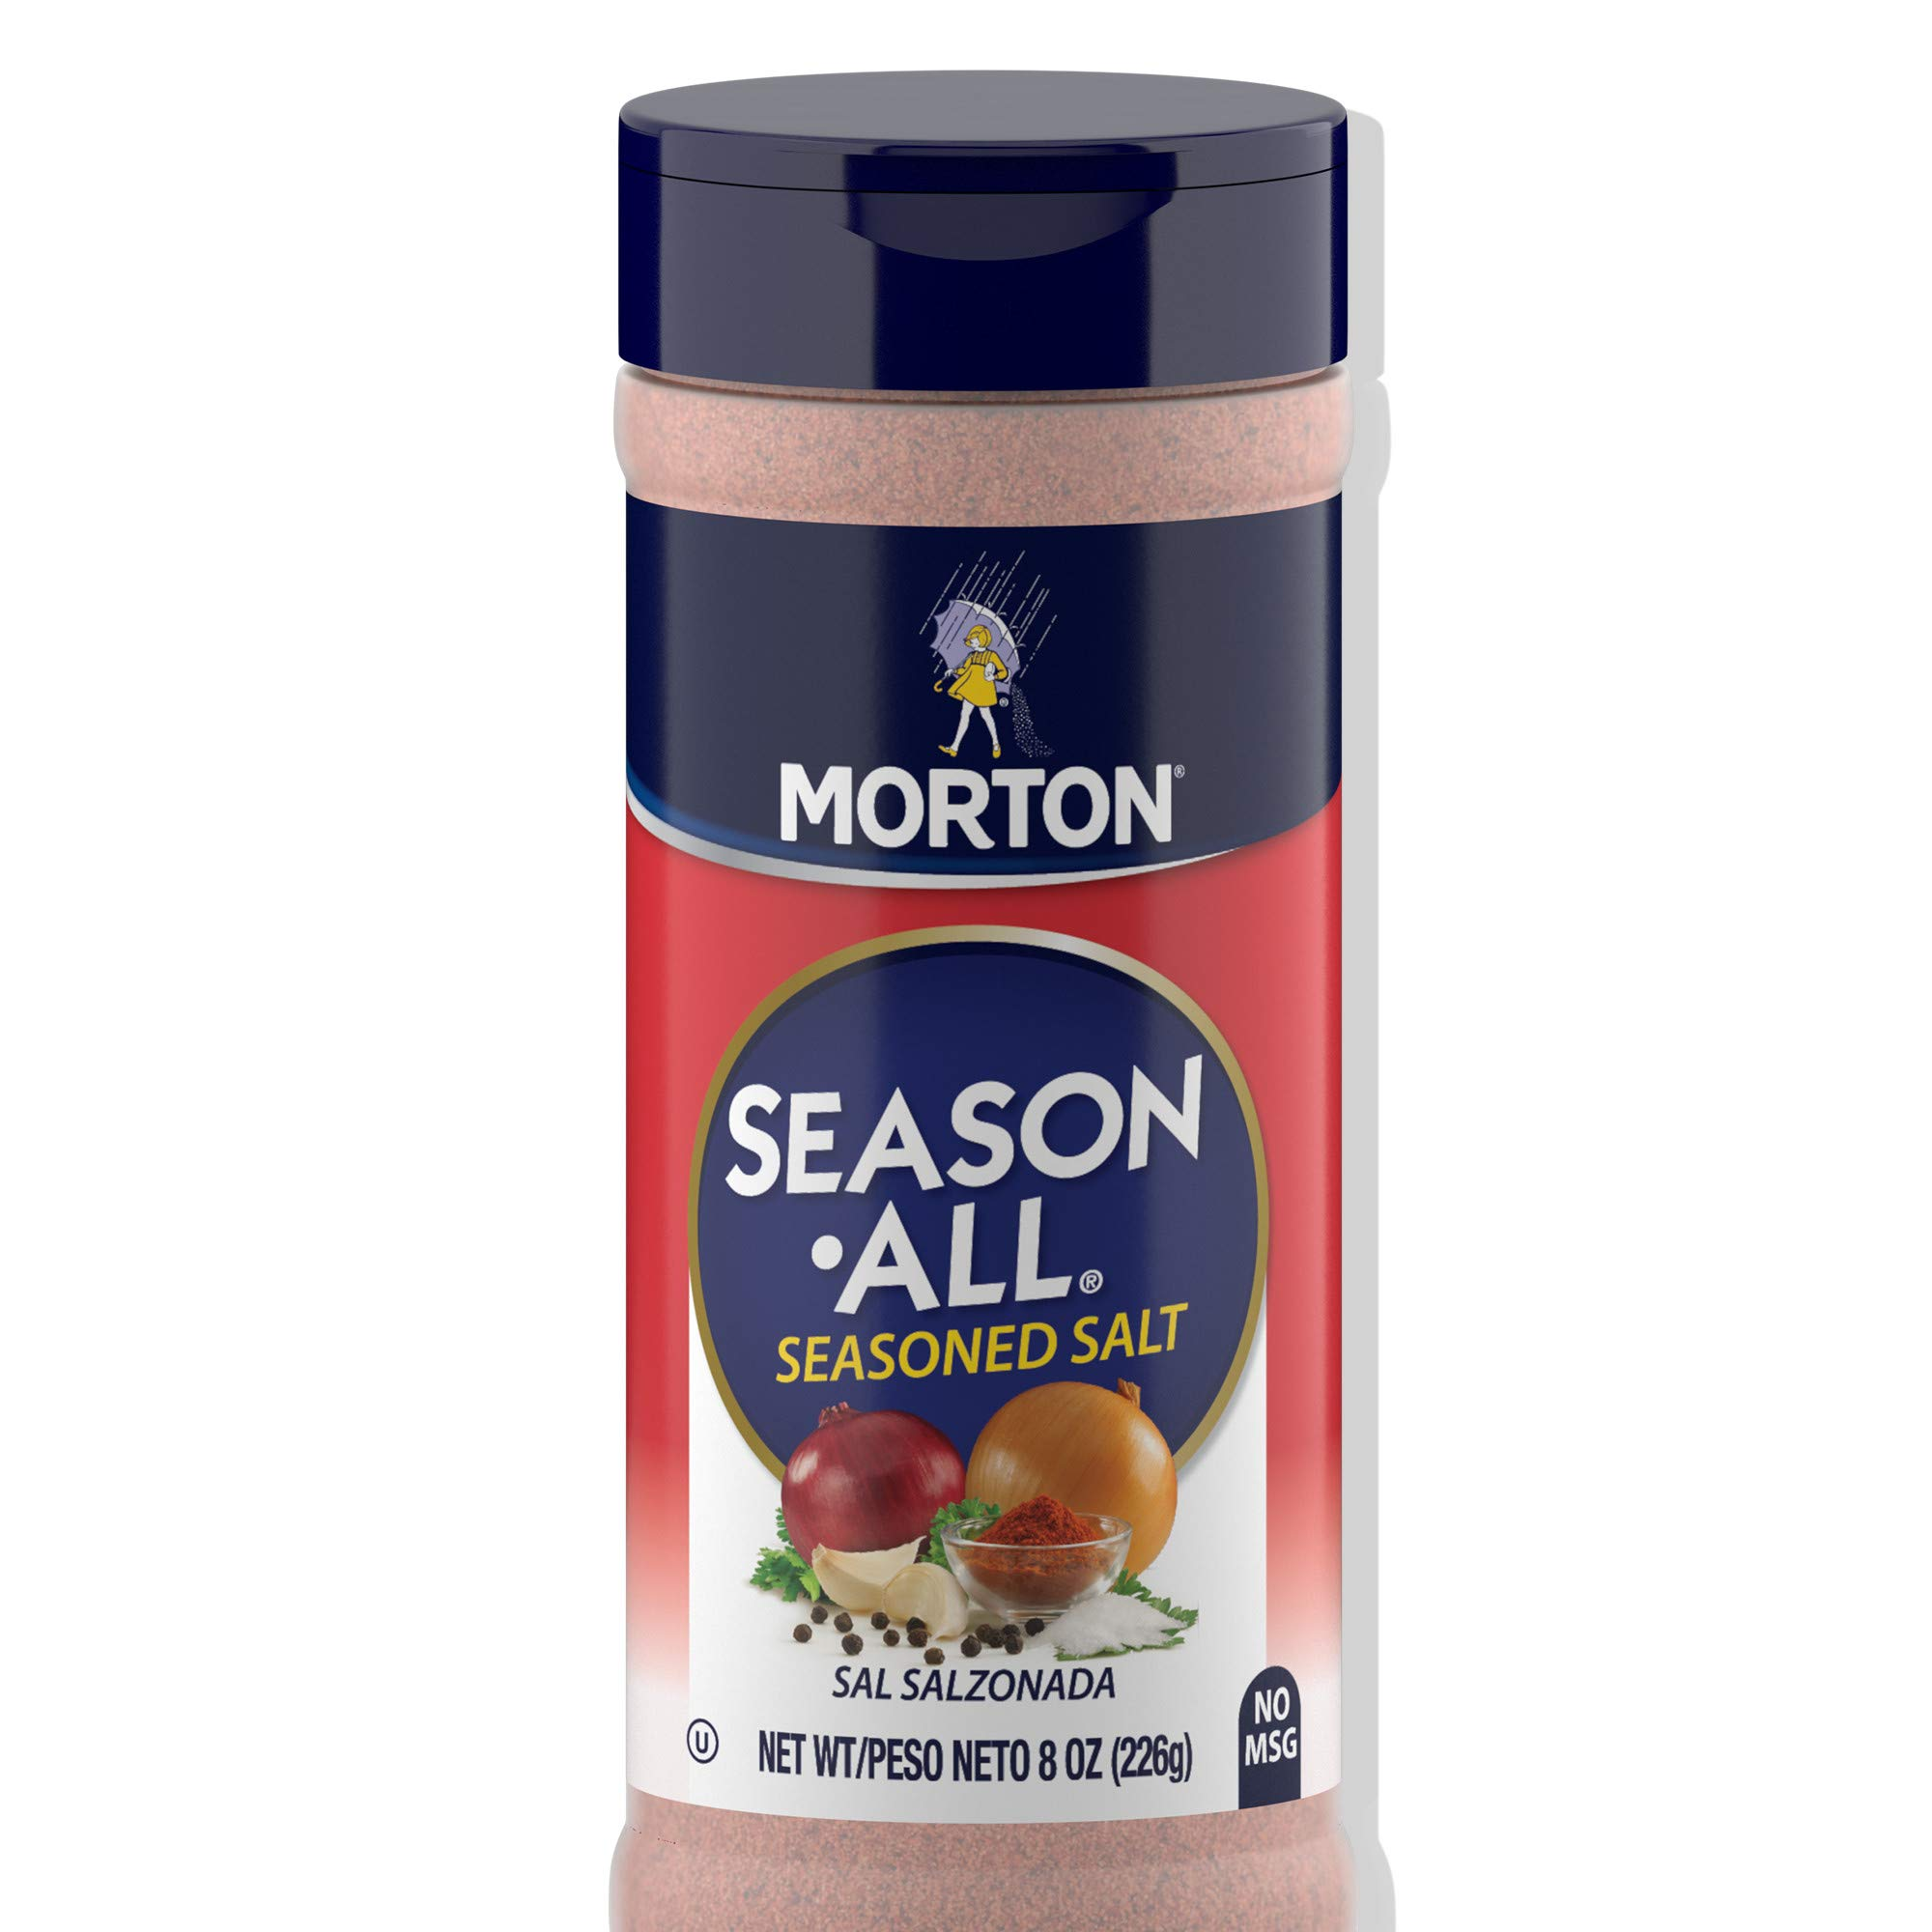 Morton Season-All Seasoned Salt - A Flavorful Blend of Salt and Savory Spices for BBQ, Grilling, and Potatoes, 8 OZ Canister (Pack of 12)